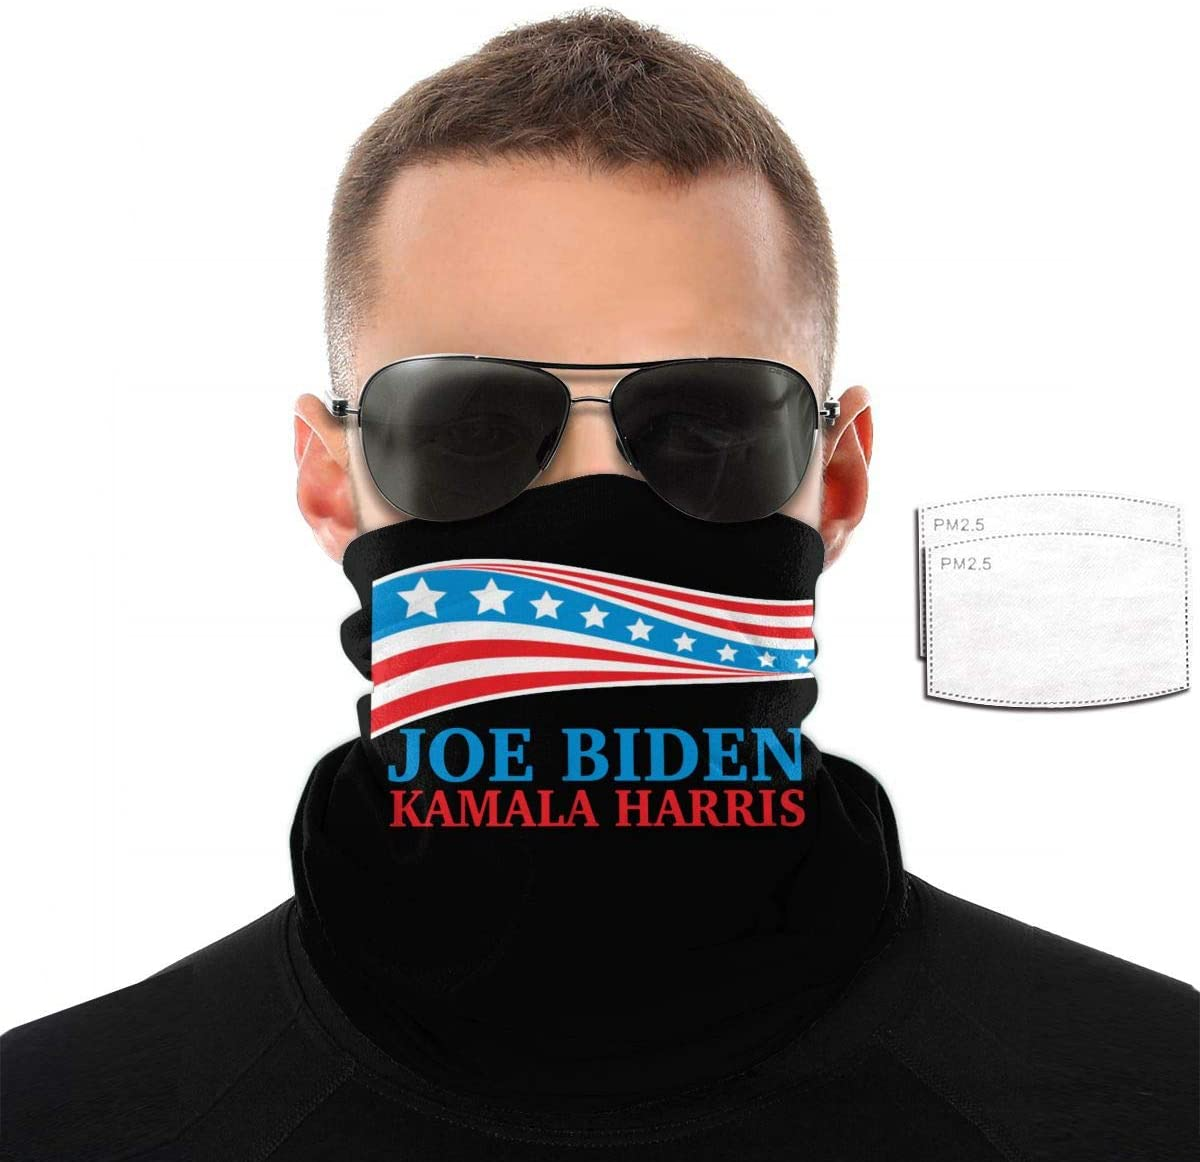 xvb Joe Biden Kamala Harris 2020. Face Scarf -Dust Uv Protection Lightweight Summer Bandanas Adjustable Comfortable Breathable Face Covering for Outdoor Cycling